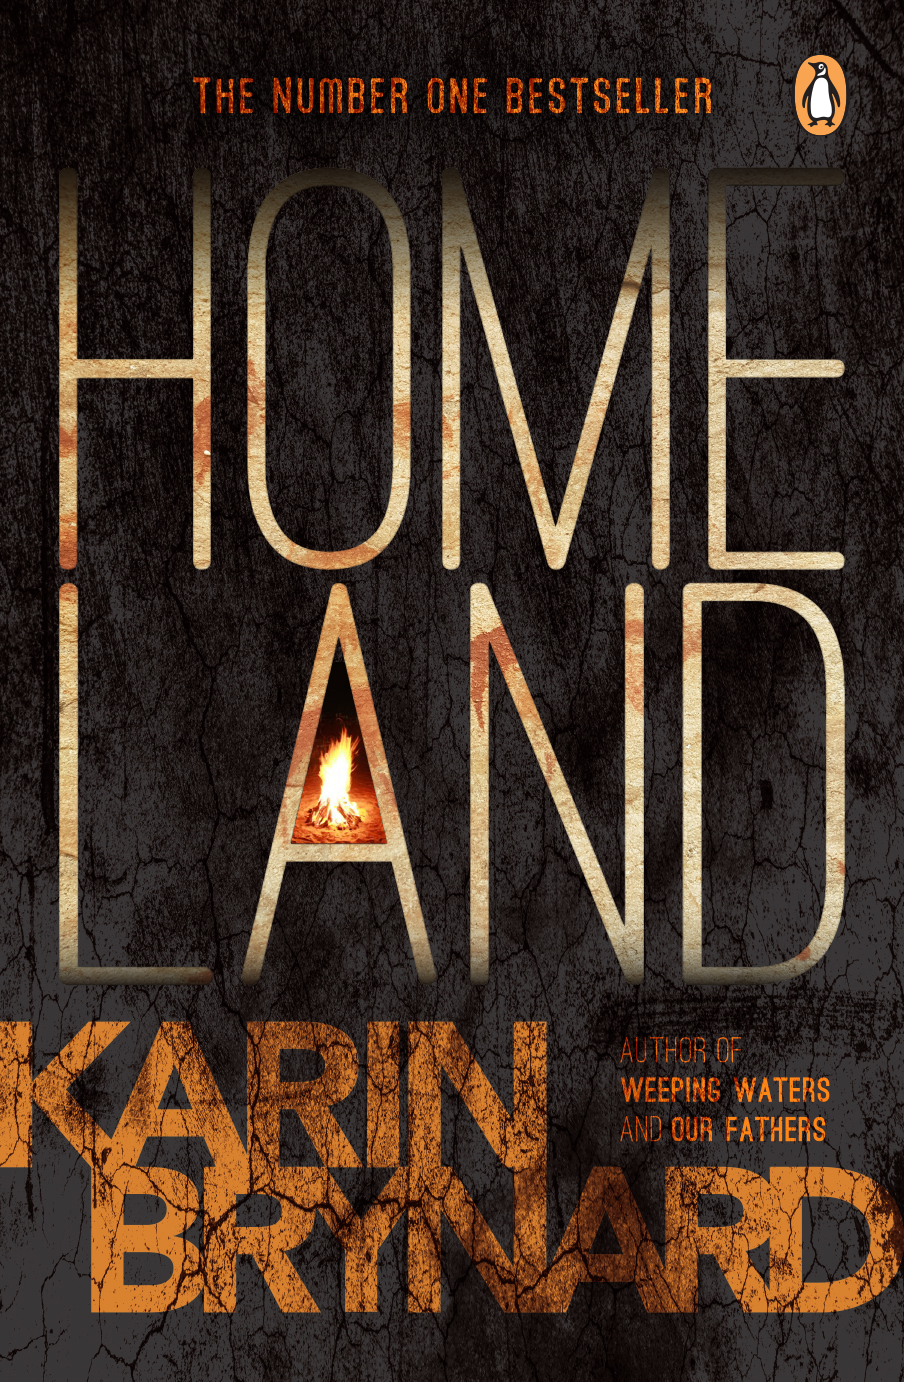 HOMELAND  Thriller, 405 pages Penguin Random House SA, May 2018  Beeslaar is ready to resign and return to Joburg, where new work, a baby daughter and chance to resolve things with the mother, Gerda, await. But things do not go as planned and he is drawn into burning issues around land rights, with lives at stake. Another masterful multi-stranded crime thriller.